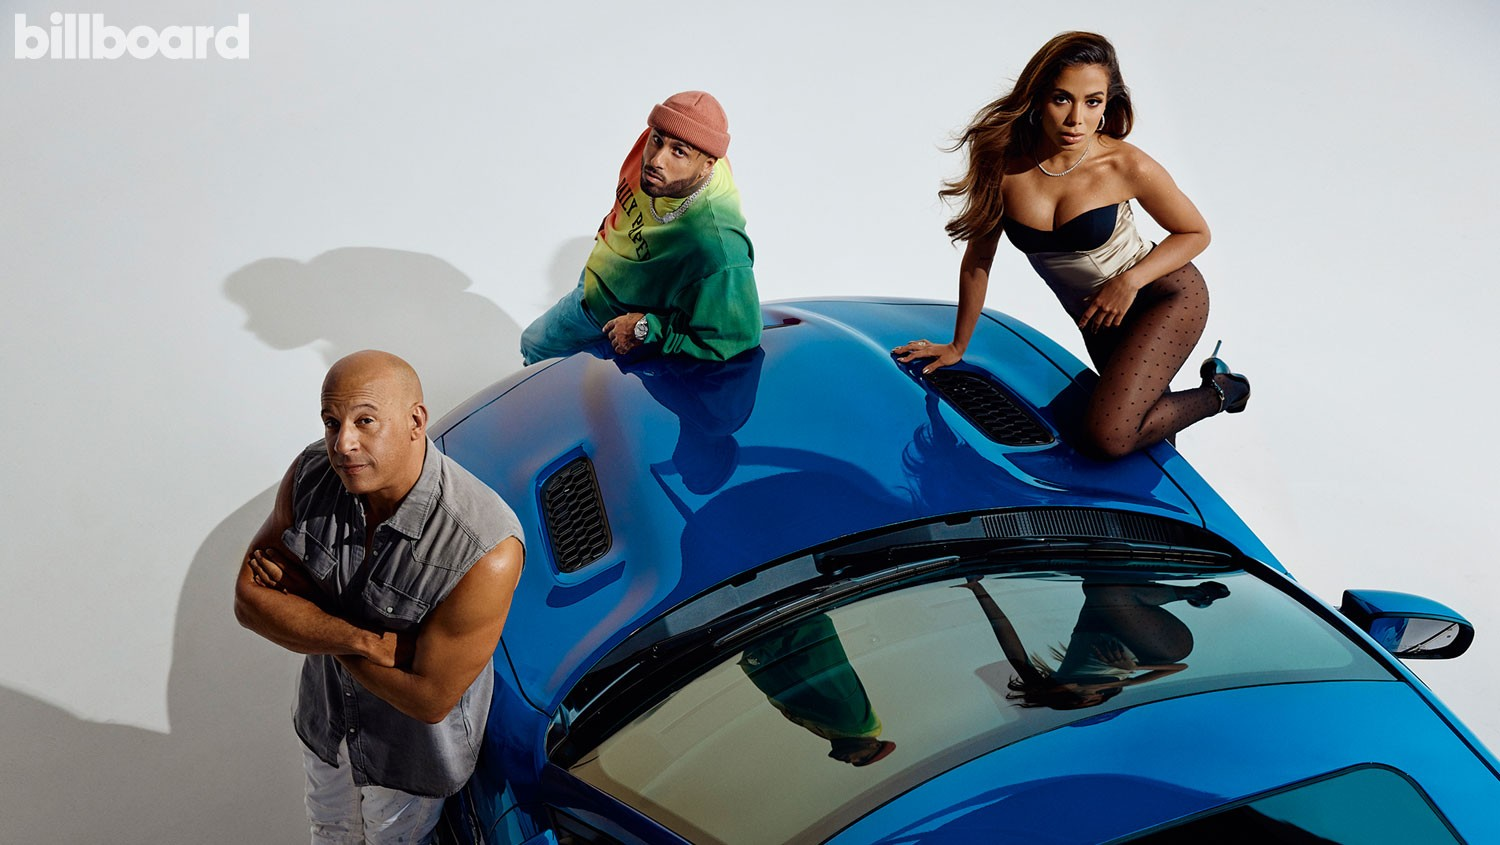 Vin Diesel, Nicky Jam and Anitta photographed by Austin Hargrave